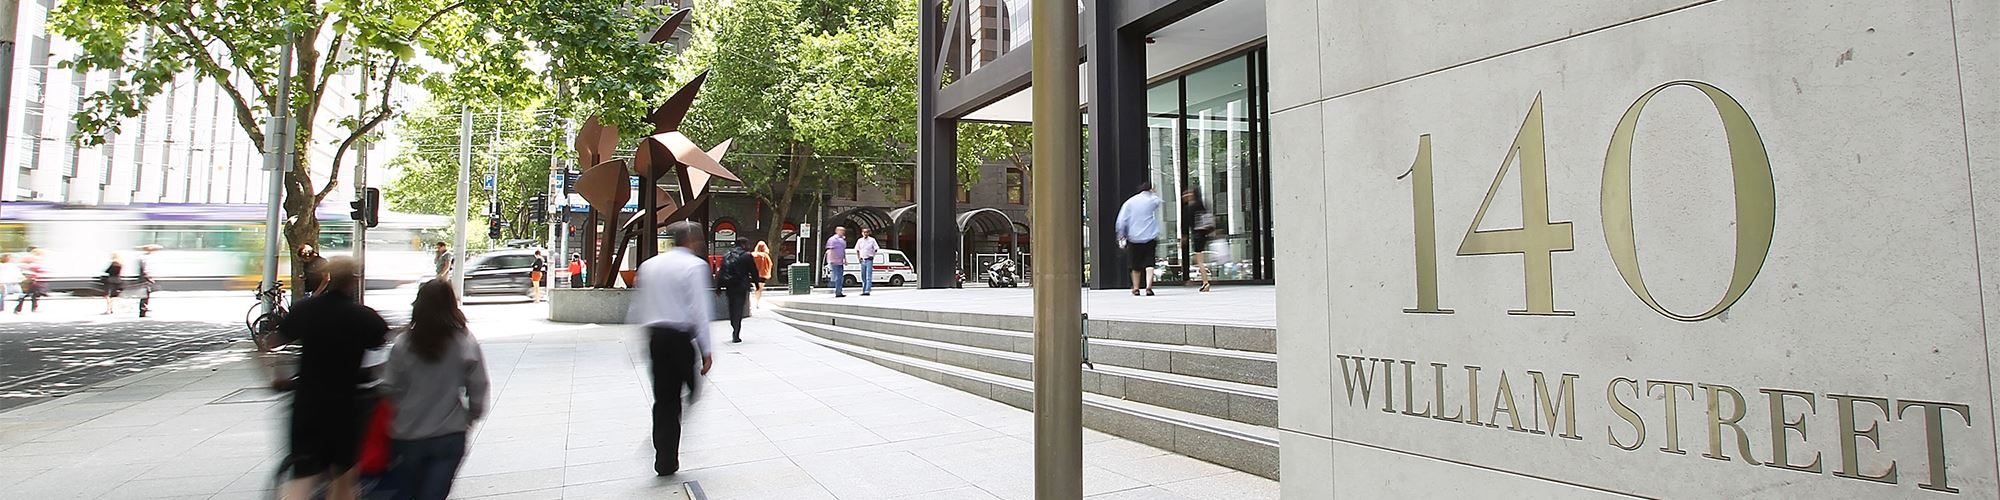 banner-140-william-street-melbourne-entrance.jpg